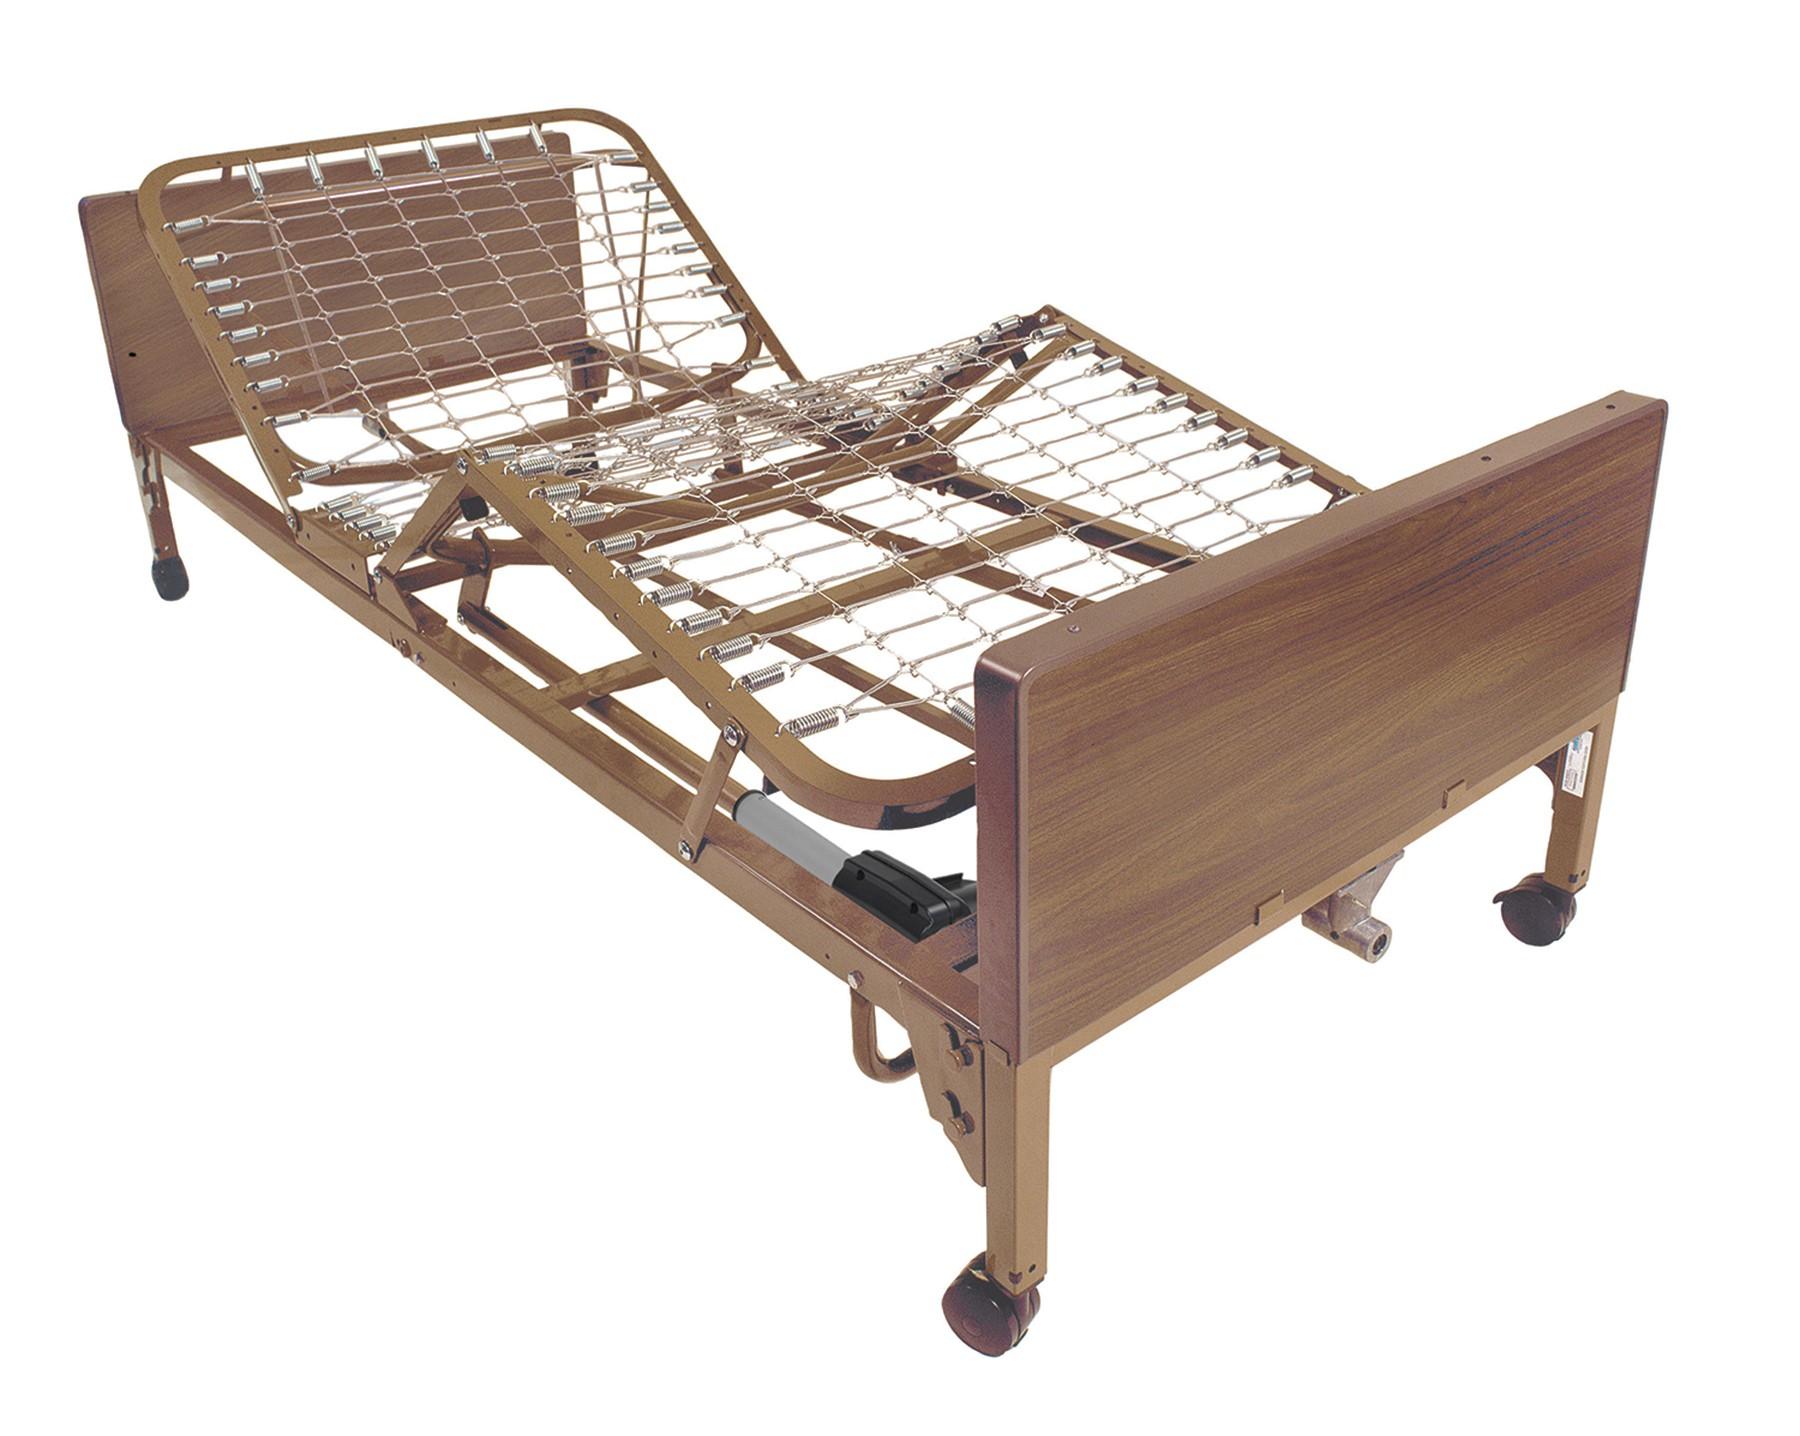 inexpensive Electric Hospital Bariatric bed